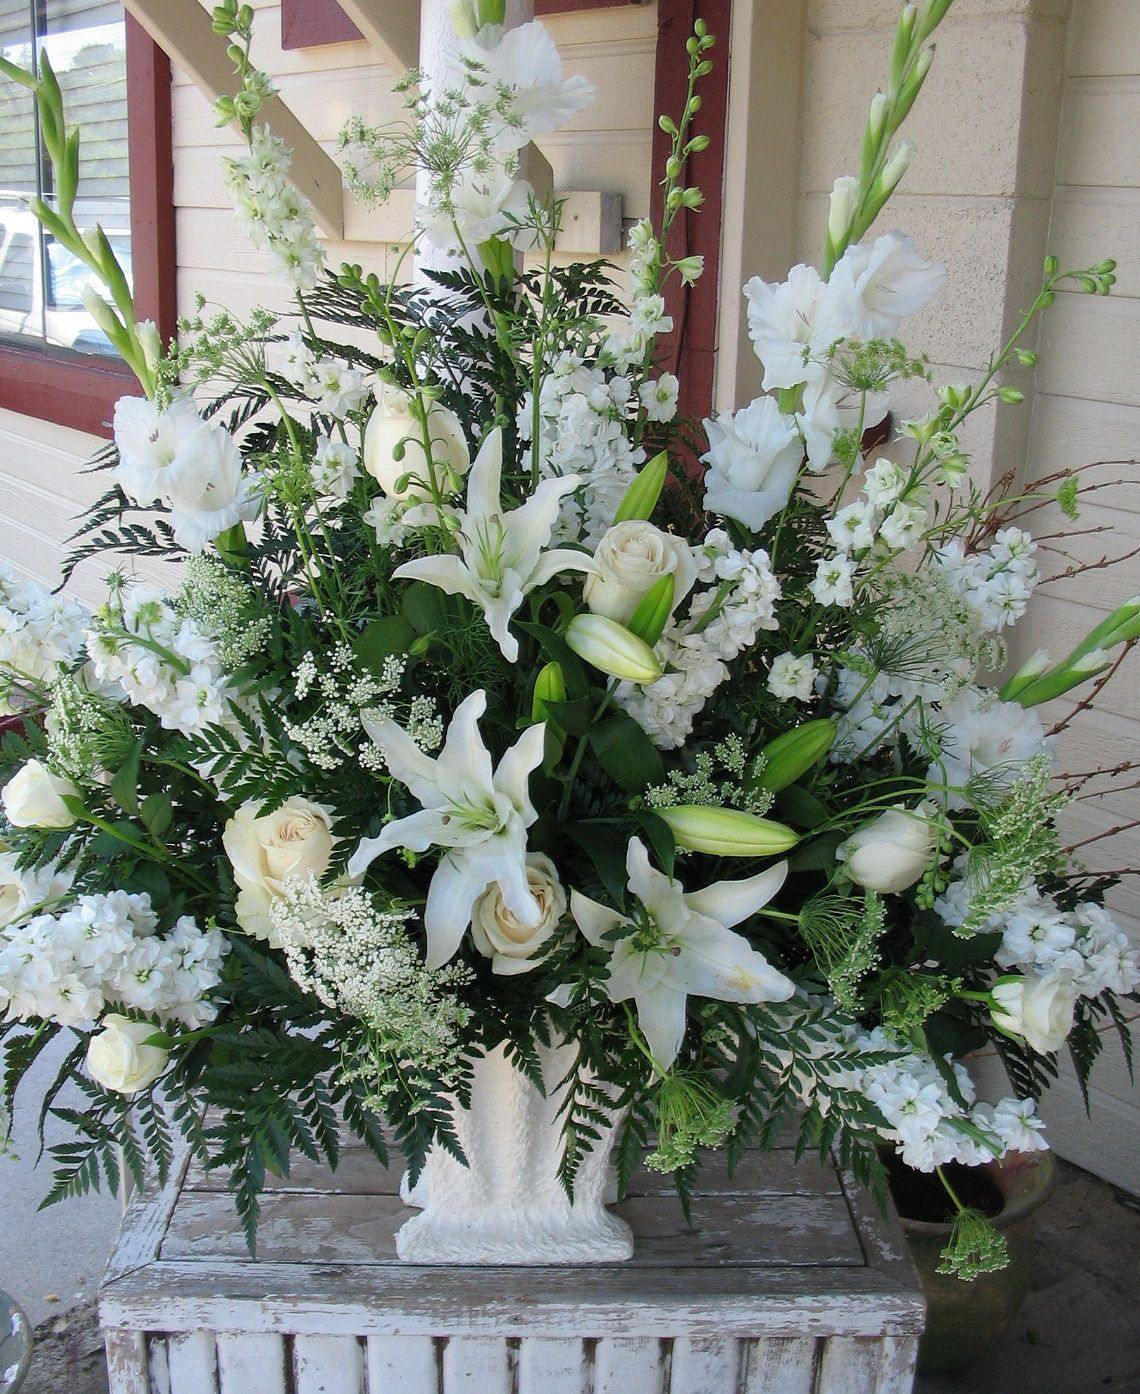 Church Altars Modern Flower Arrangement: CHURCH WEDDING ALTER FLOOWERS